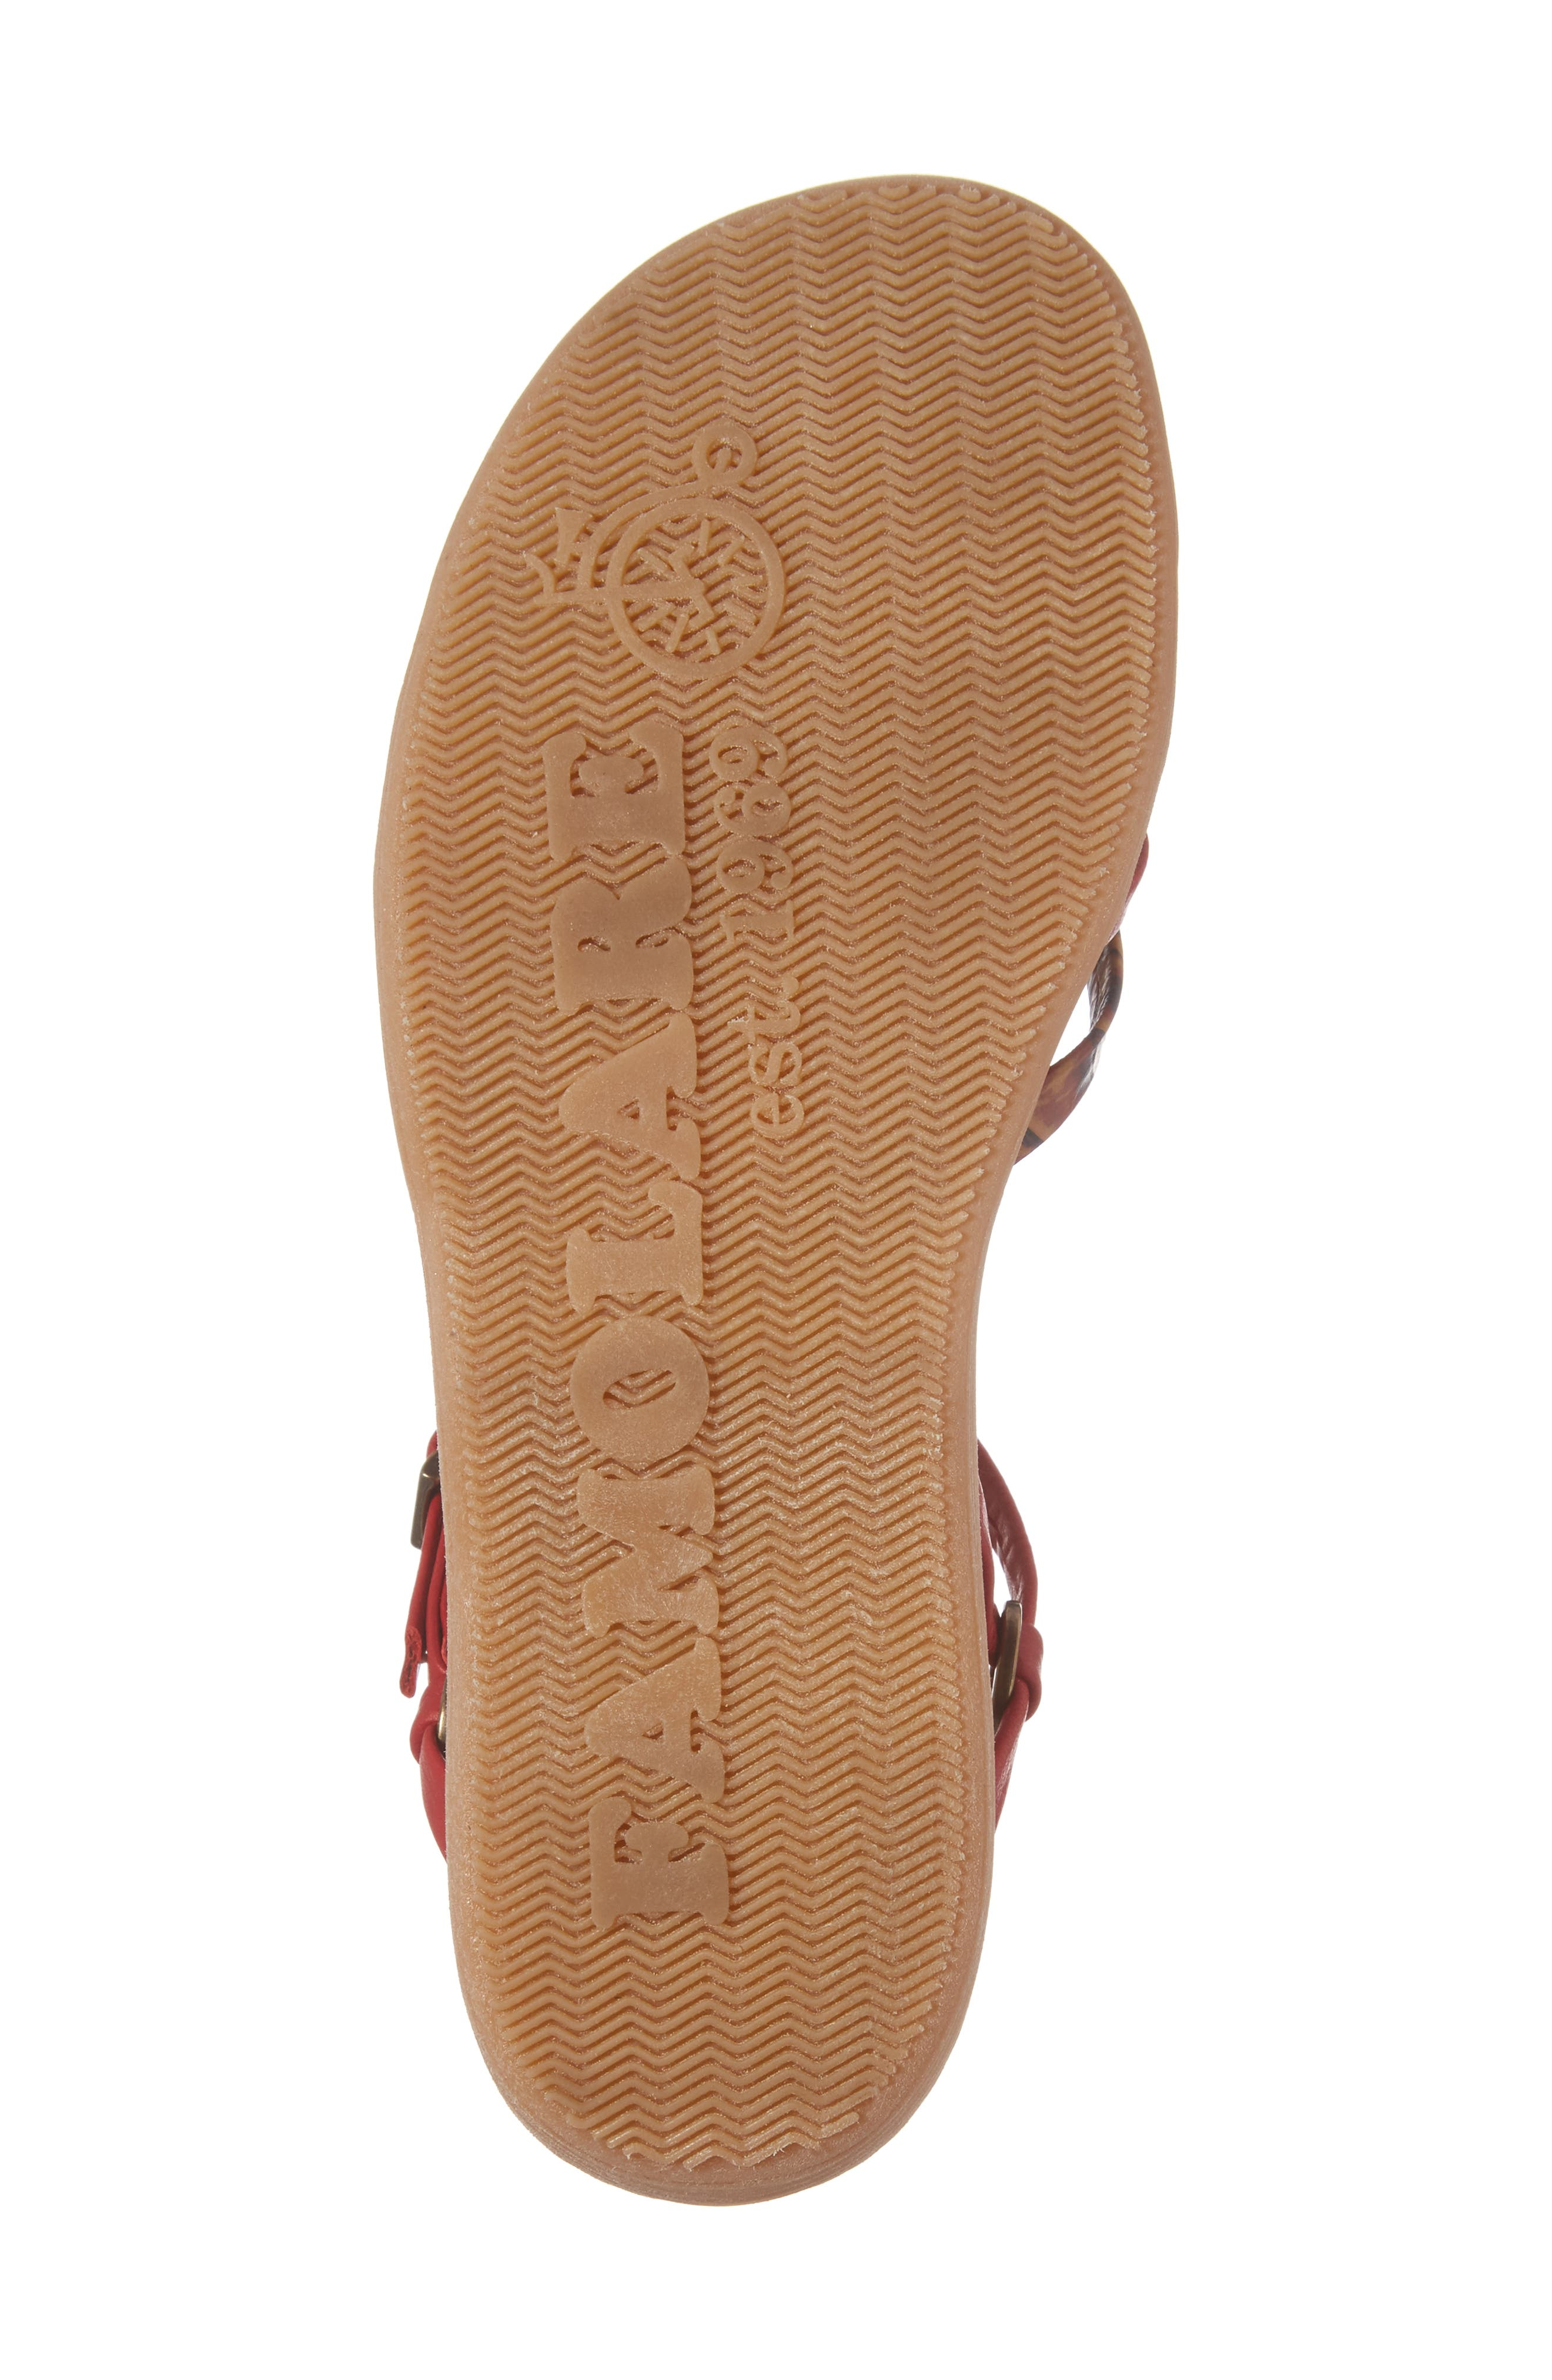 Strap Music Knotted Sandal,                             Alternate thumbnail 6, color,                             MULTI CORAL LEATHER